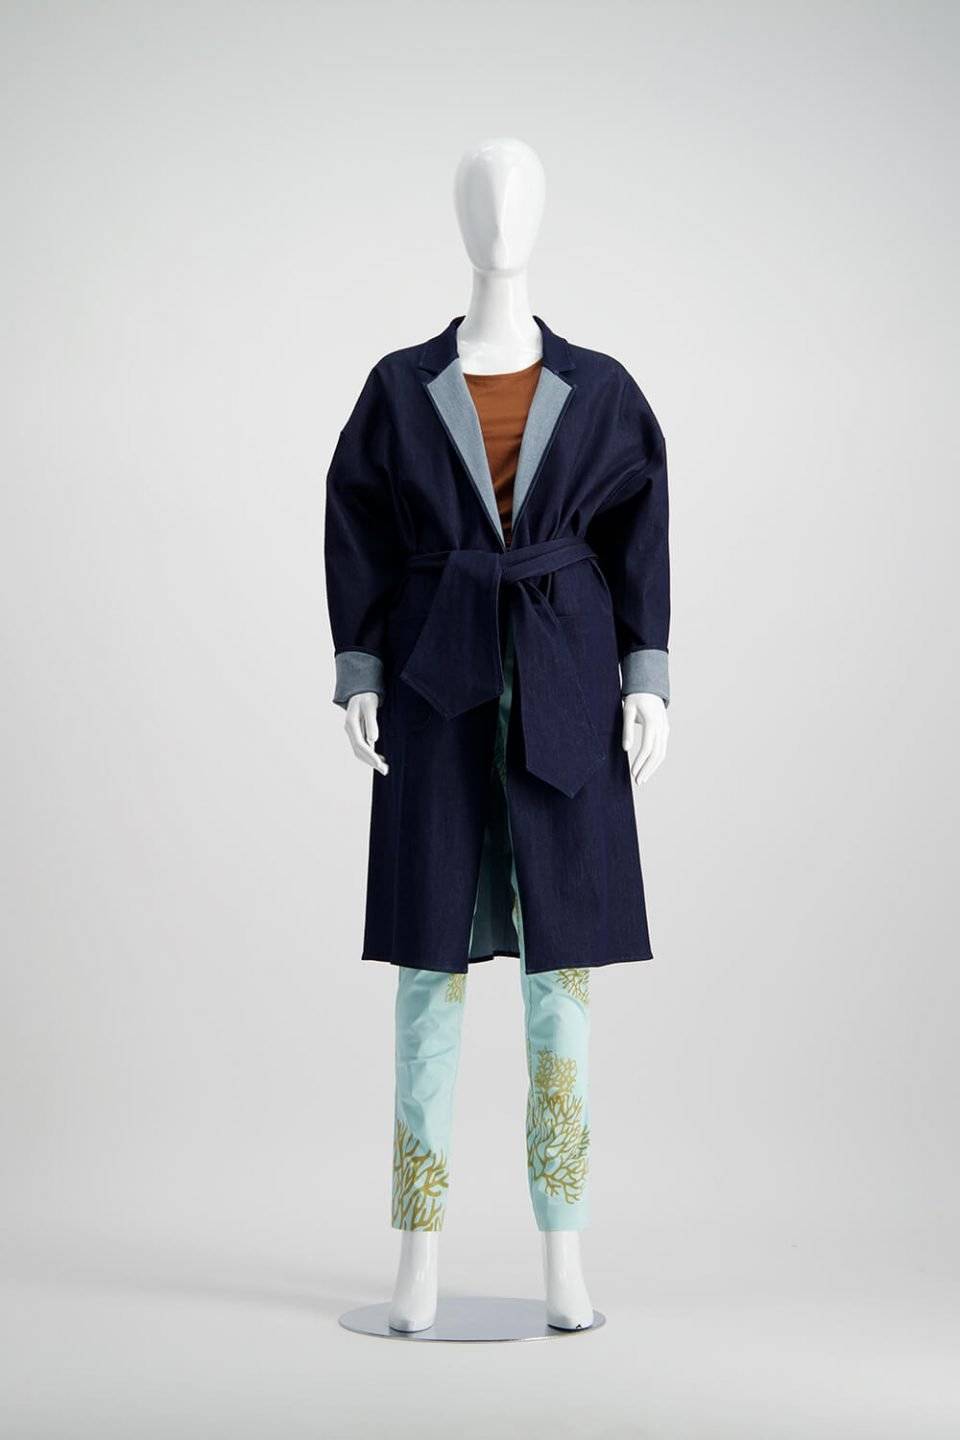 Denim coat over a brown top and green pants from WORLD brand